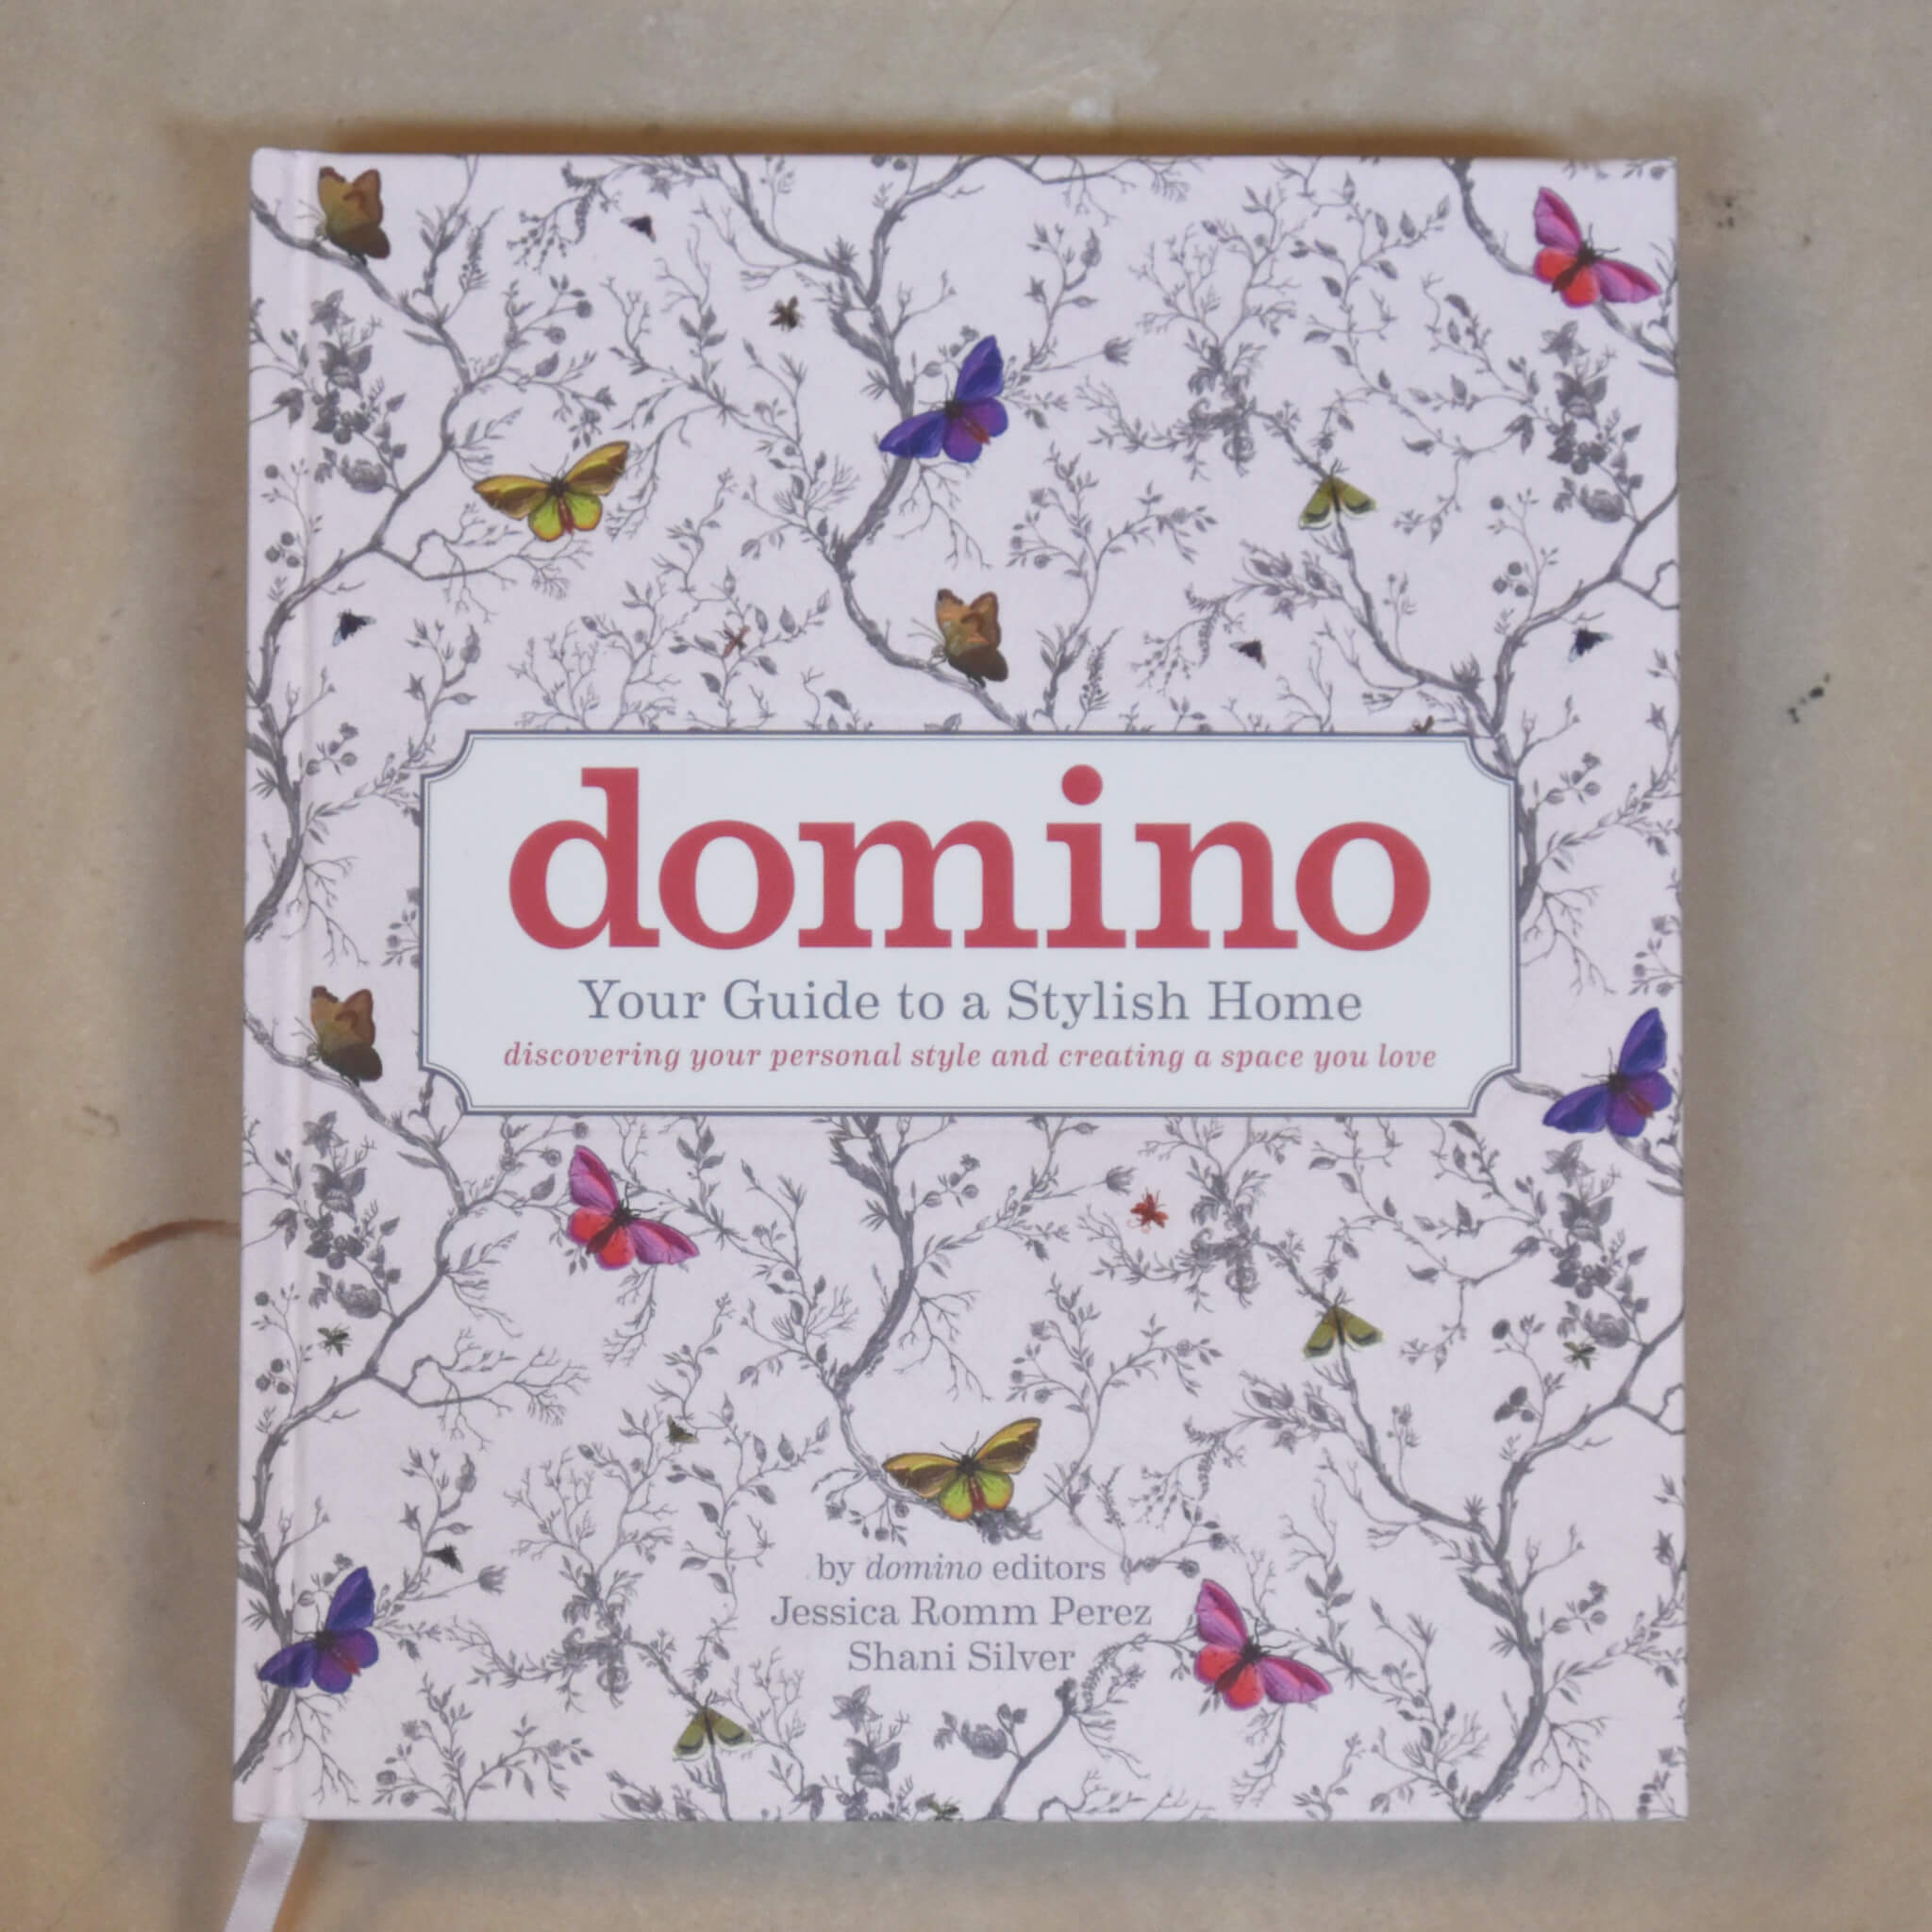 Domino- your guide to a stylish home